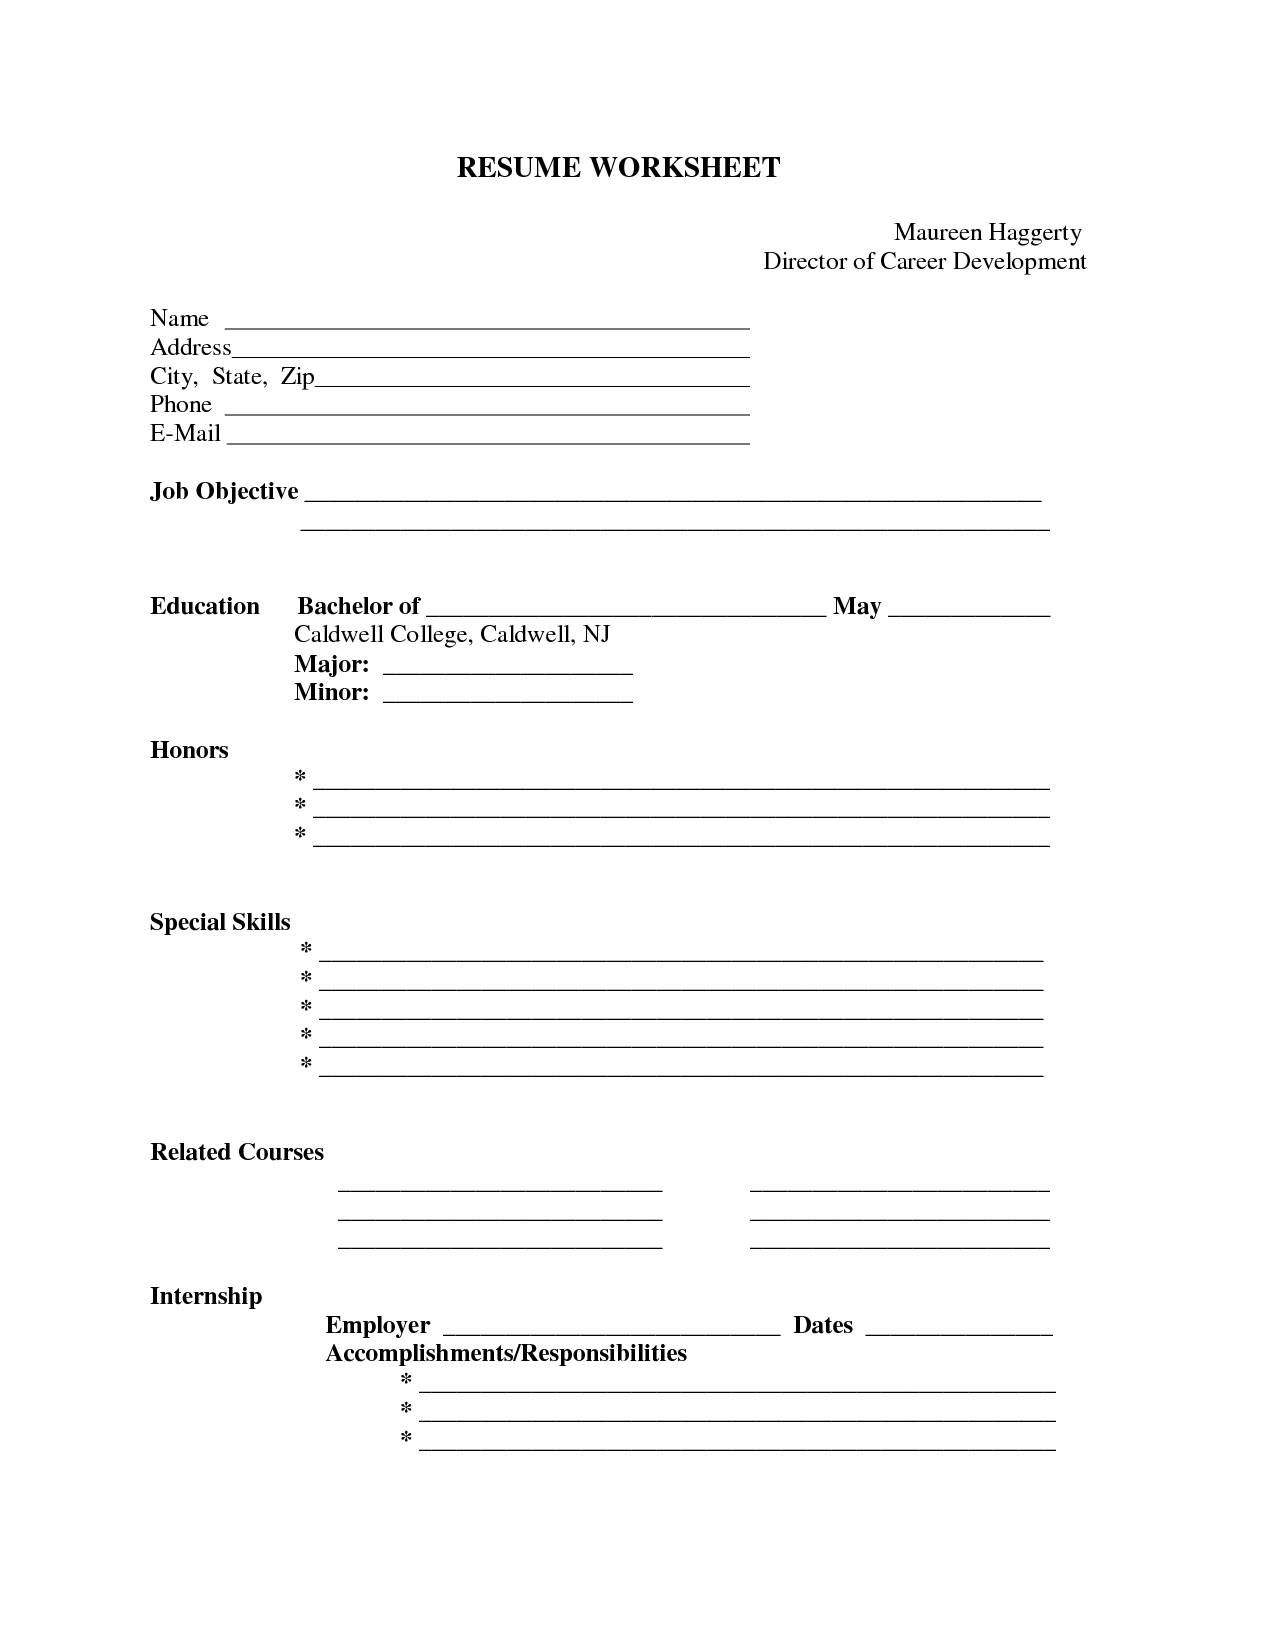 Free Printable Blank Resume Forms Httpwwwresumecareerinfo  Dd2f55c75a8976cd3cde4d0b59f029c2 329466528968574394. Resume Builder For College  Students Resume ...  College Student Resume Builder